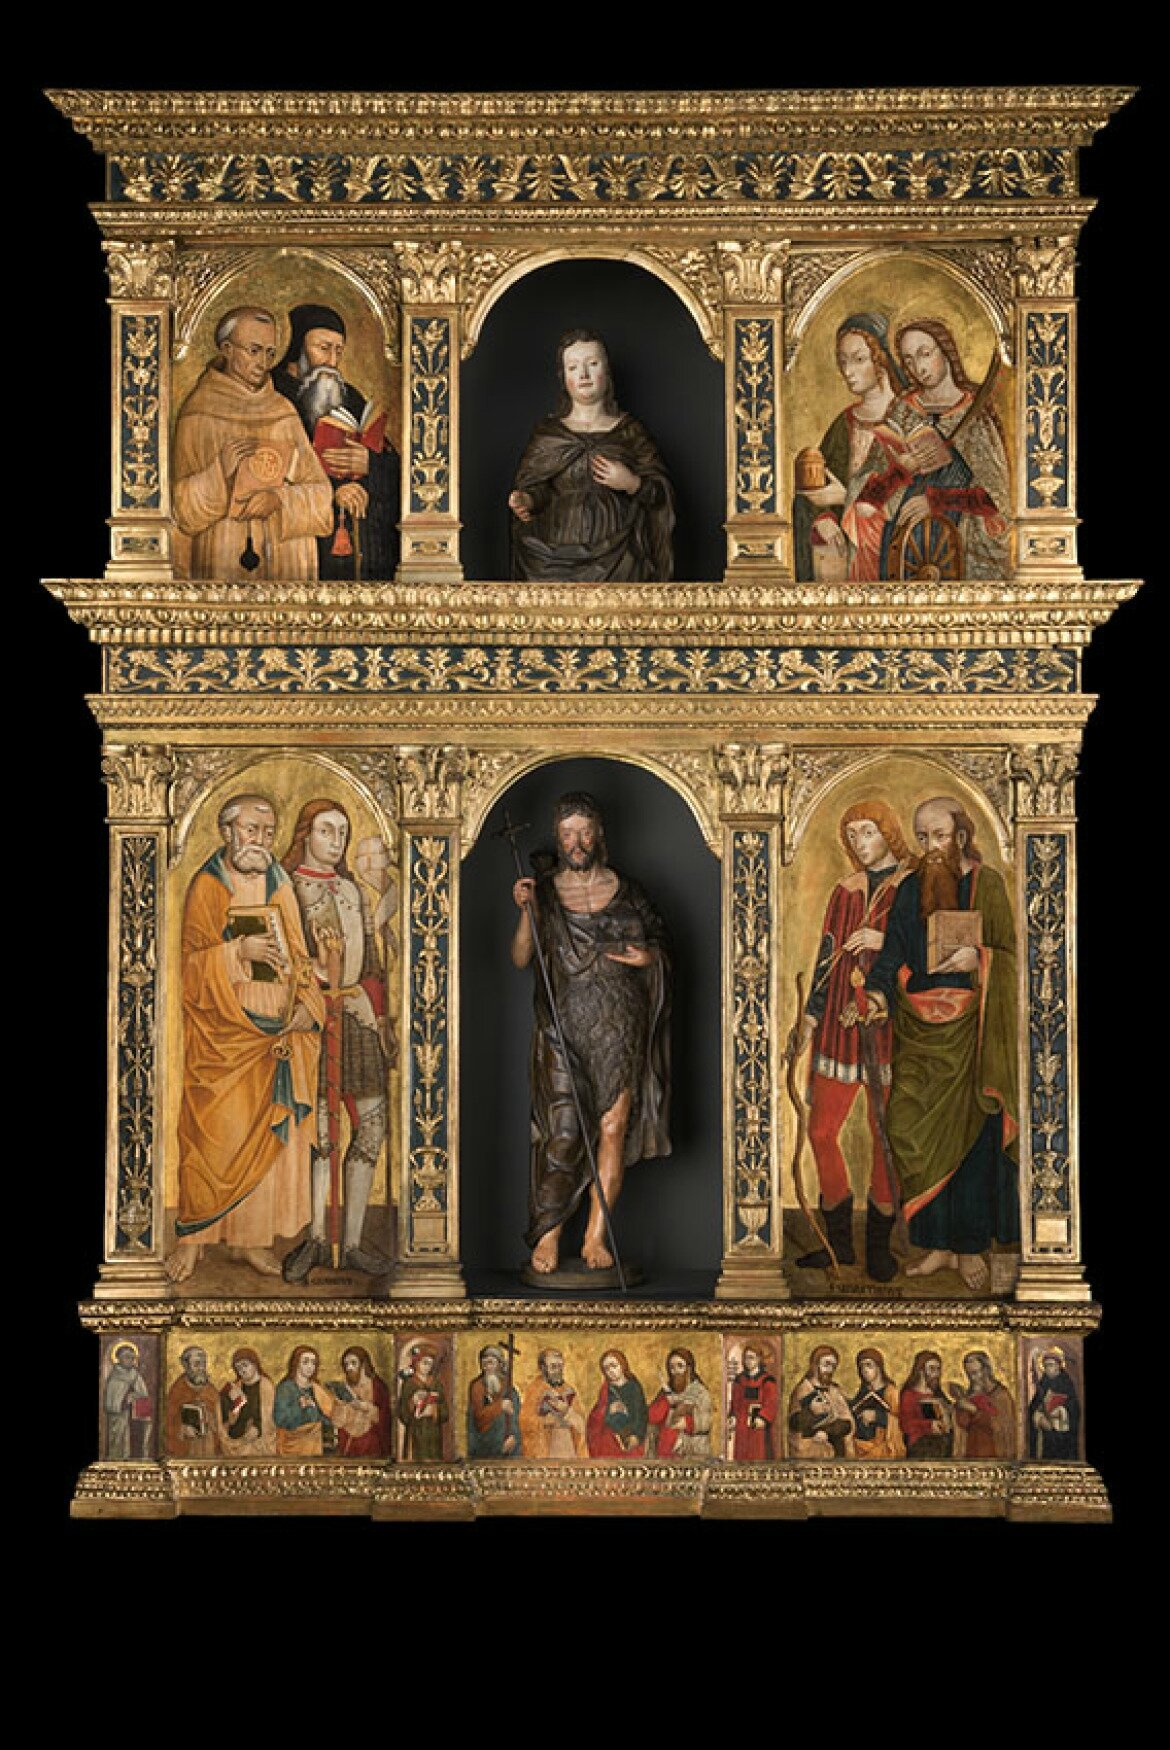 Bagatti Valsecchi Museum presents the restoration of the Marinoni Polyptych